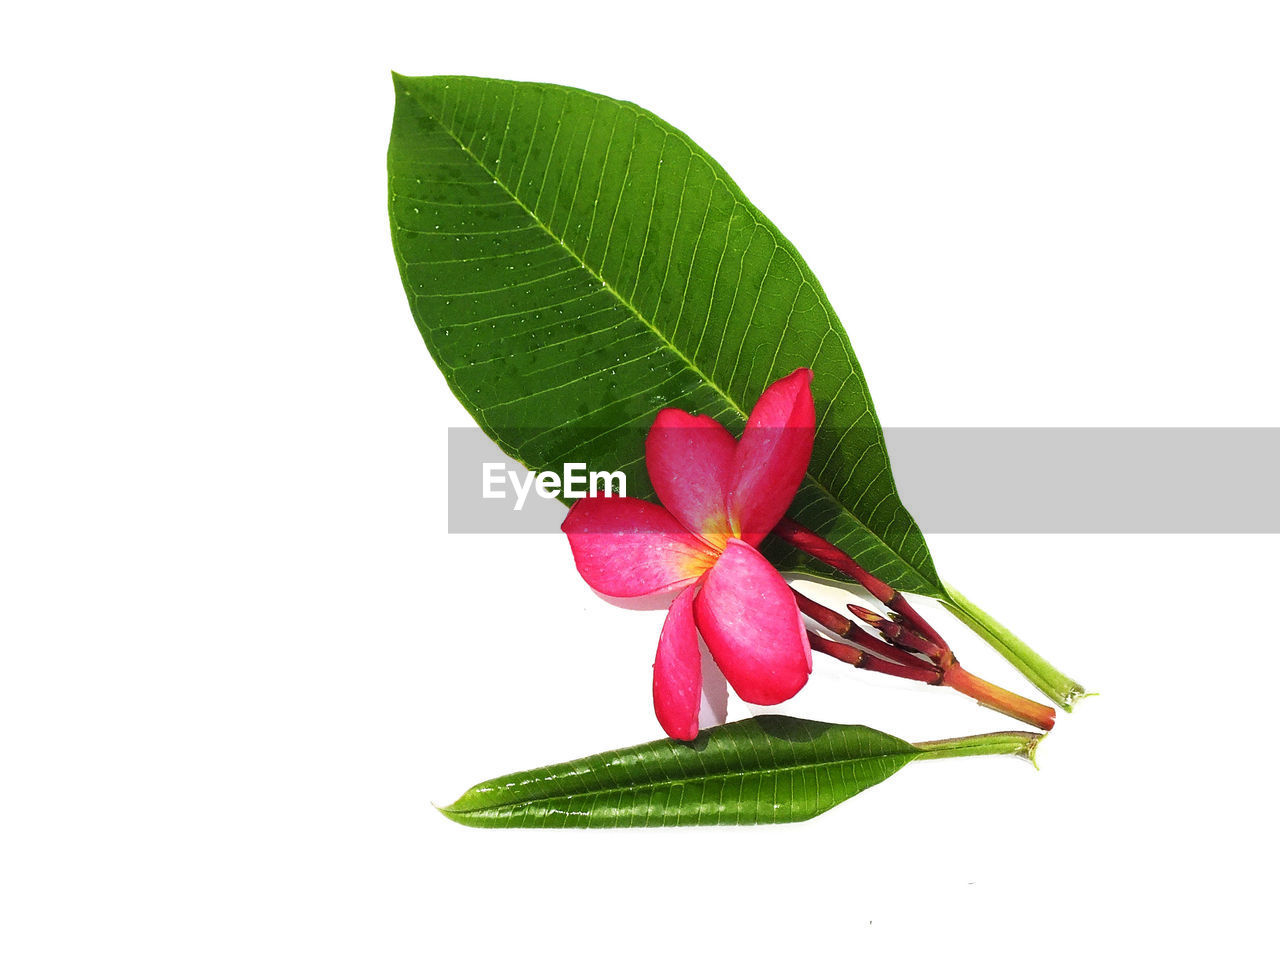 leaf, plant part, studio shot, white background, plant, close-up, freshness, beauty in nature, green color, flower, flowering plant, cut out, nature, copy space, vulnerability, petal, pink color, no people, fragility, flower head, leaves